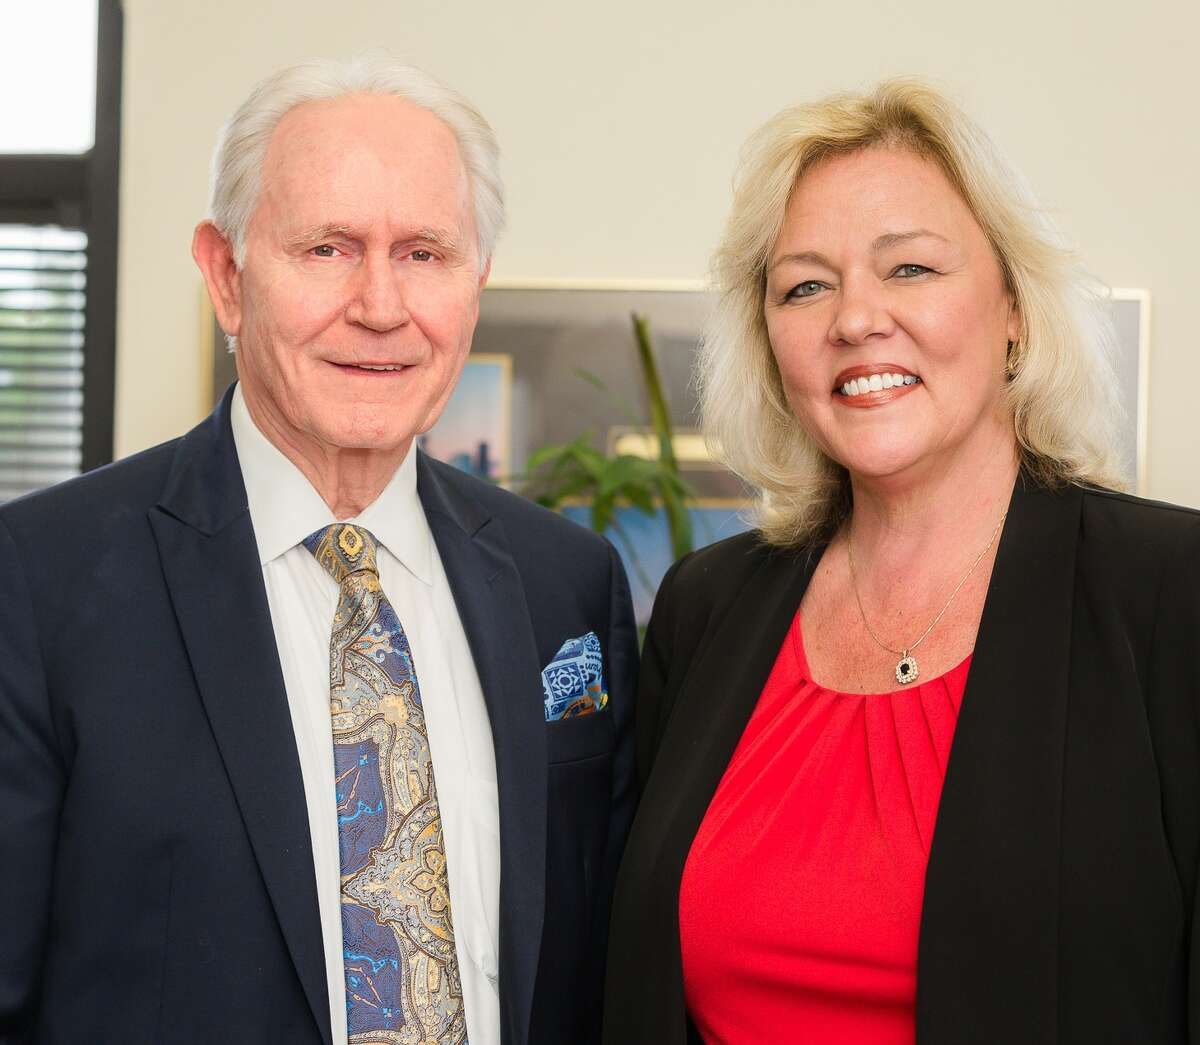 Larry Hill, founder of Sumar Property Management, left, with Terri Clifton, president of Better World Properties.